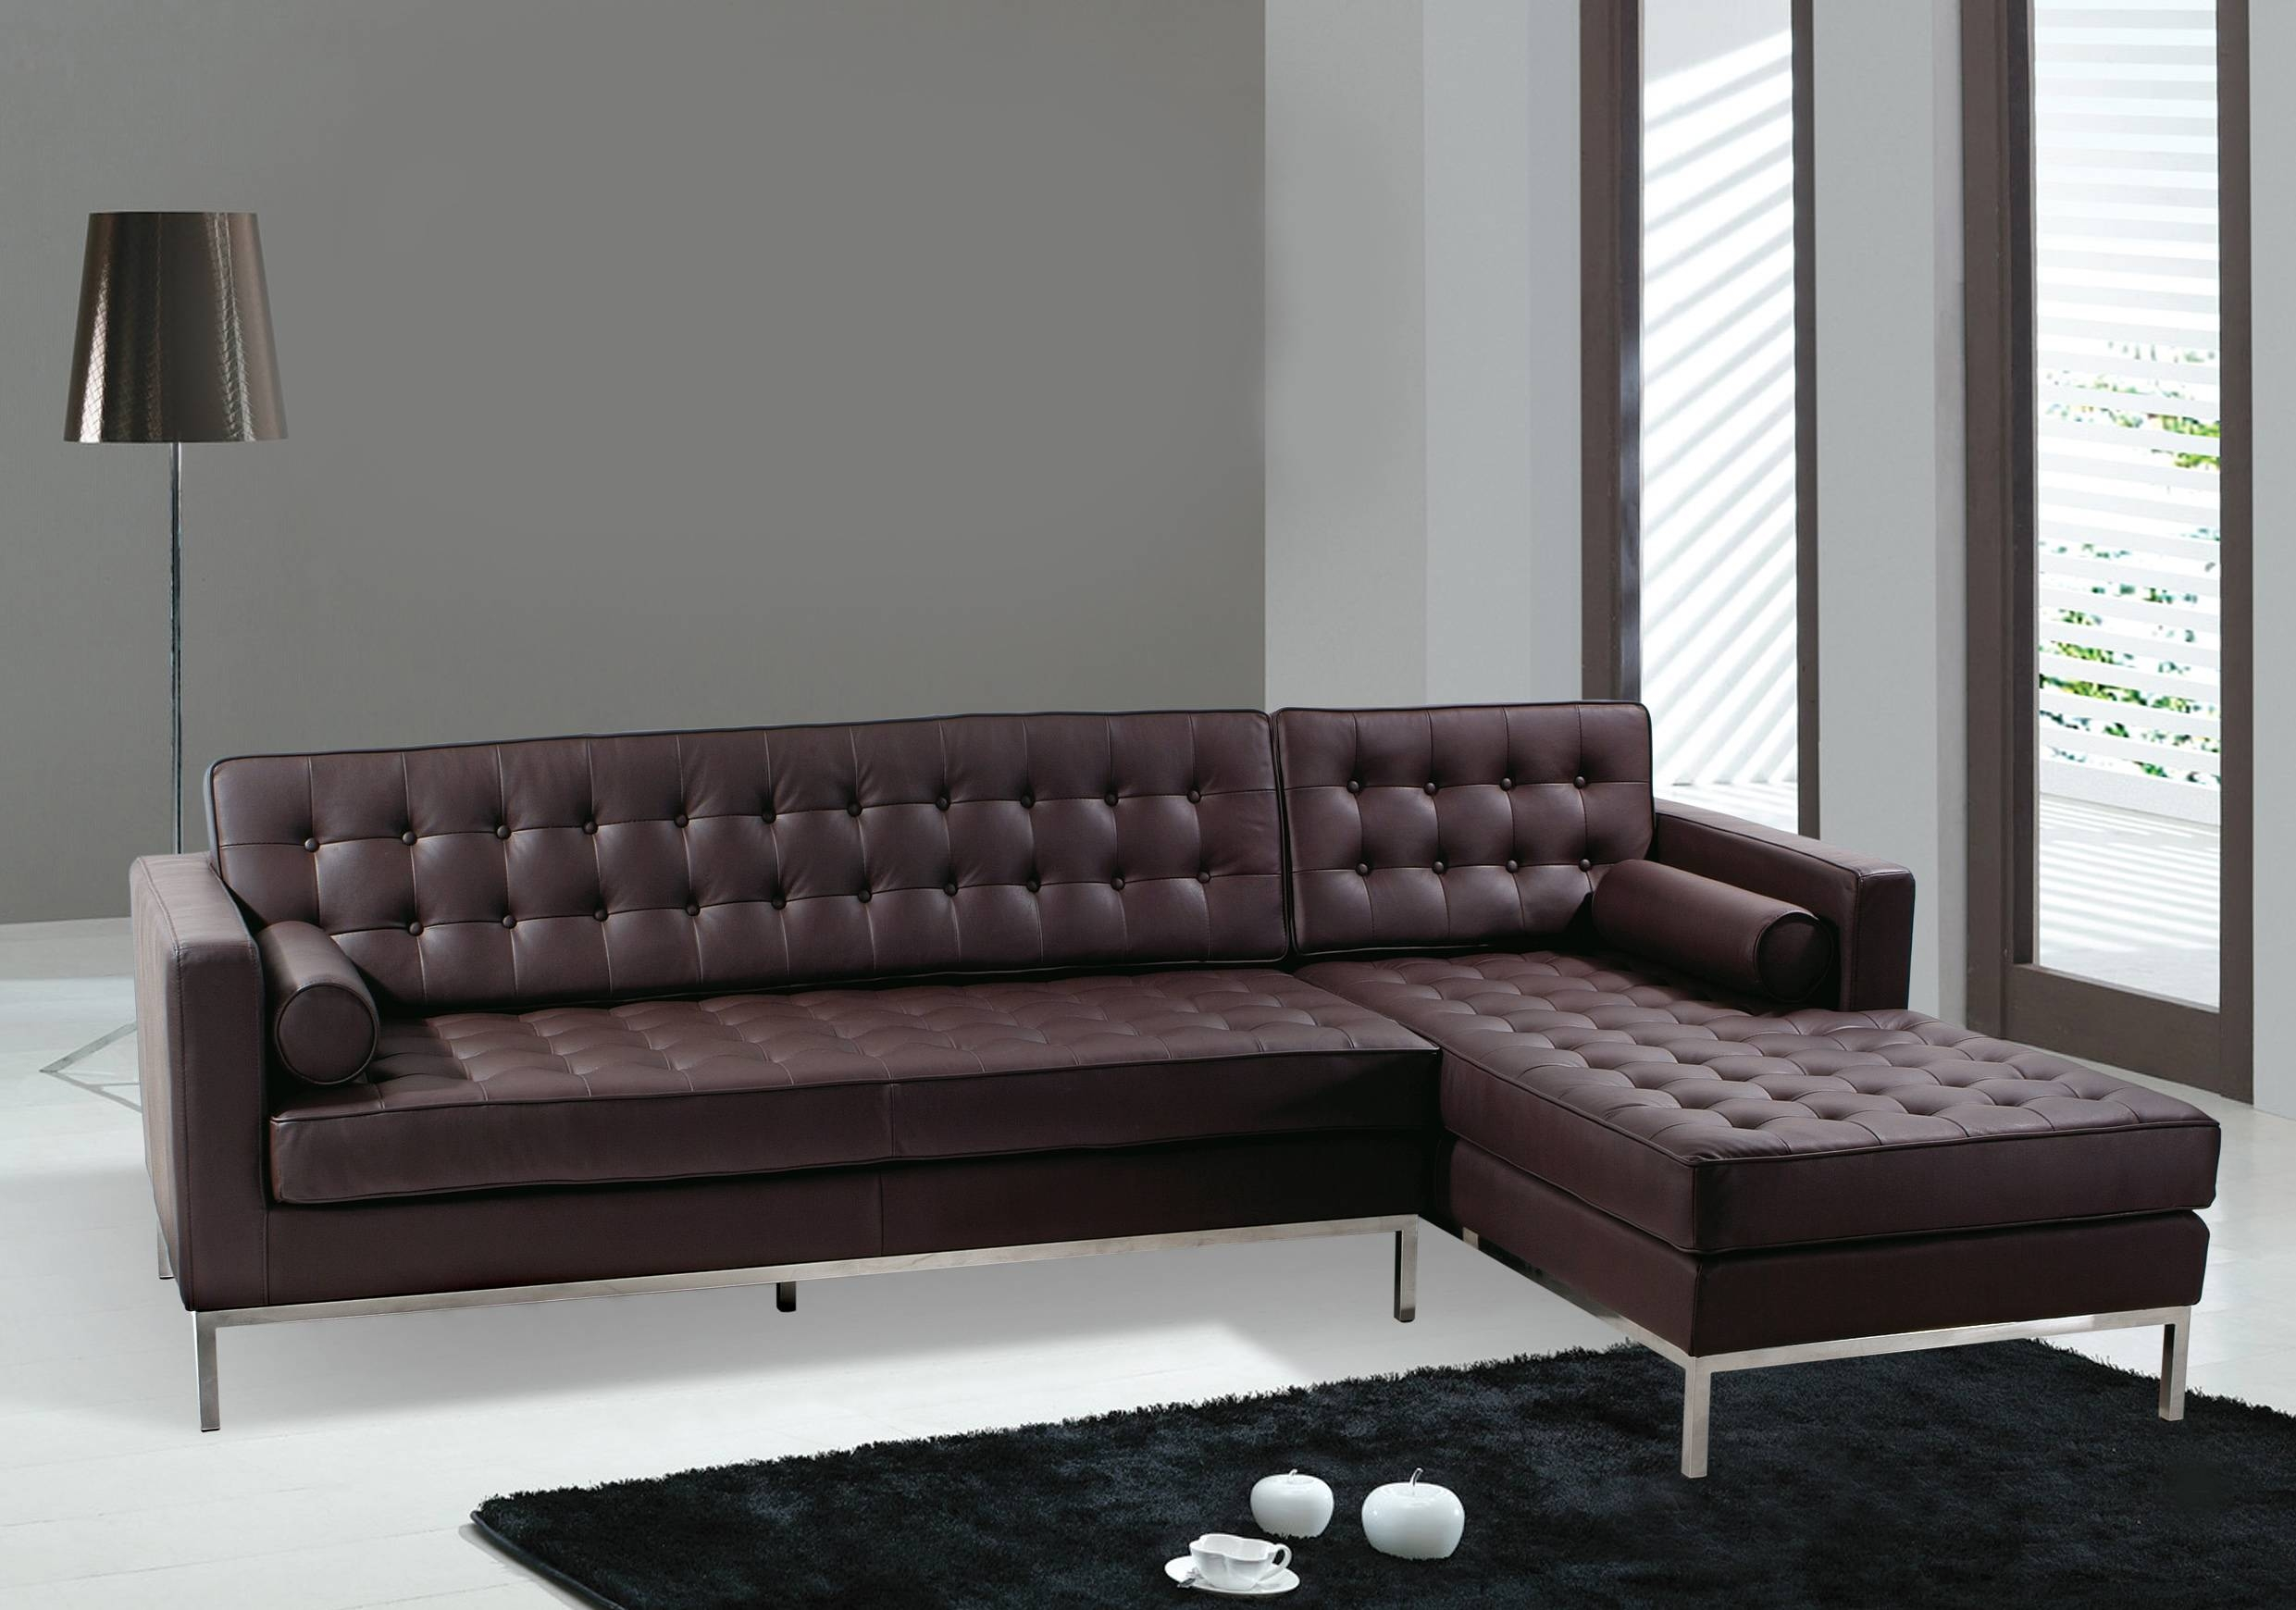 leather possibilities track arm sofa jonathan louis jcpenney sofas sectionals design ideas